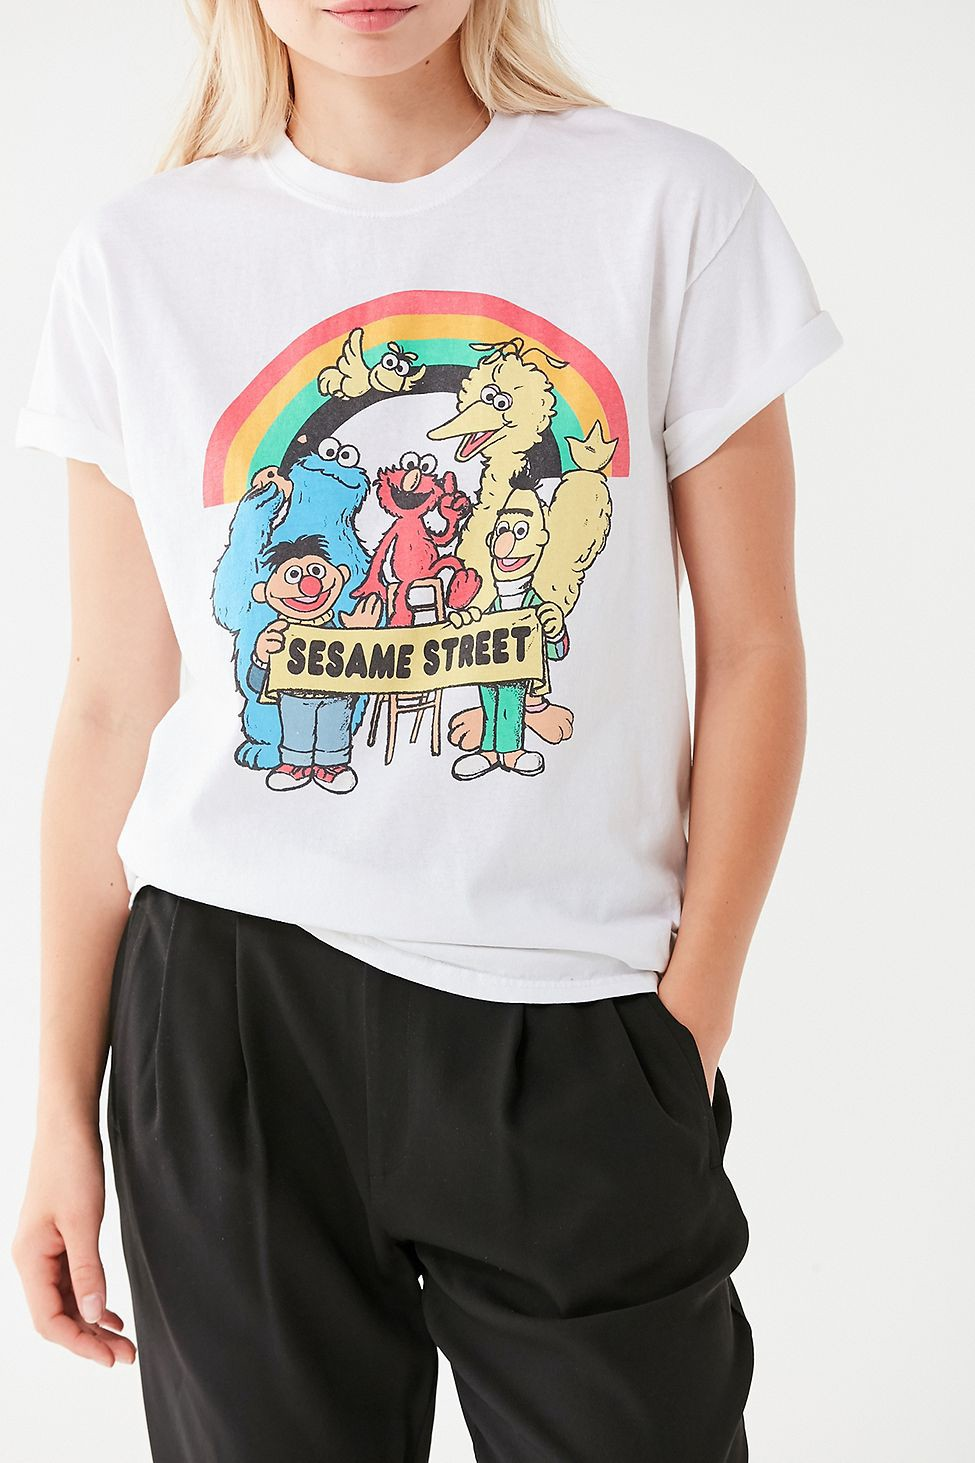 2f92db78c Urban Outfitters Uo Sesame Street Tee - XS | Products | Urban ...